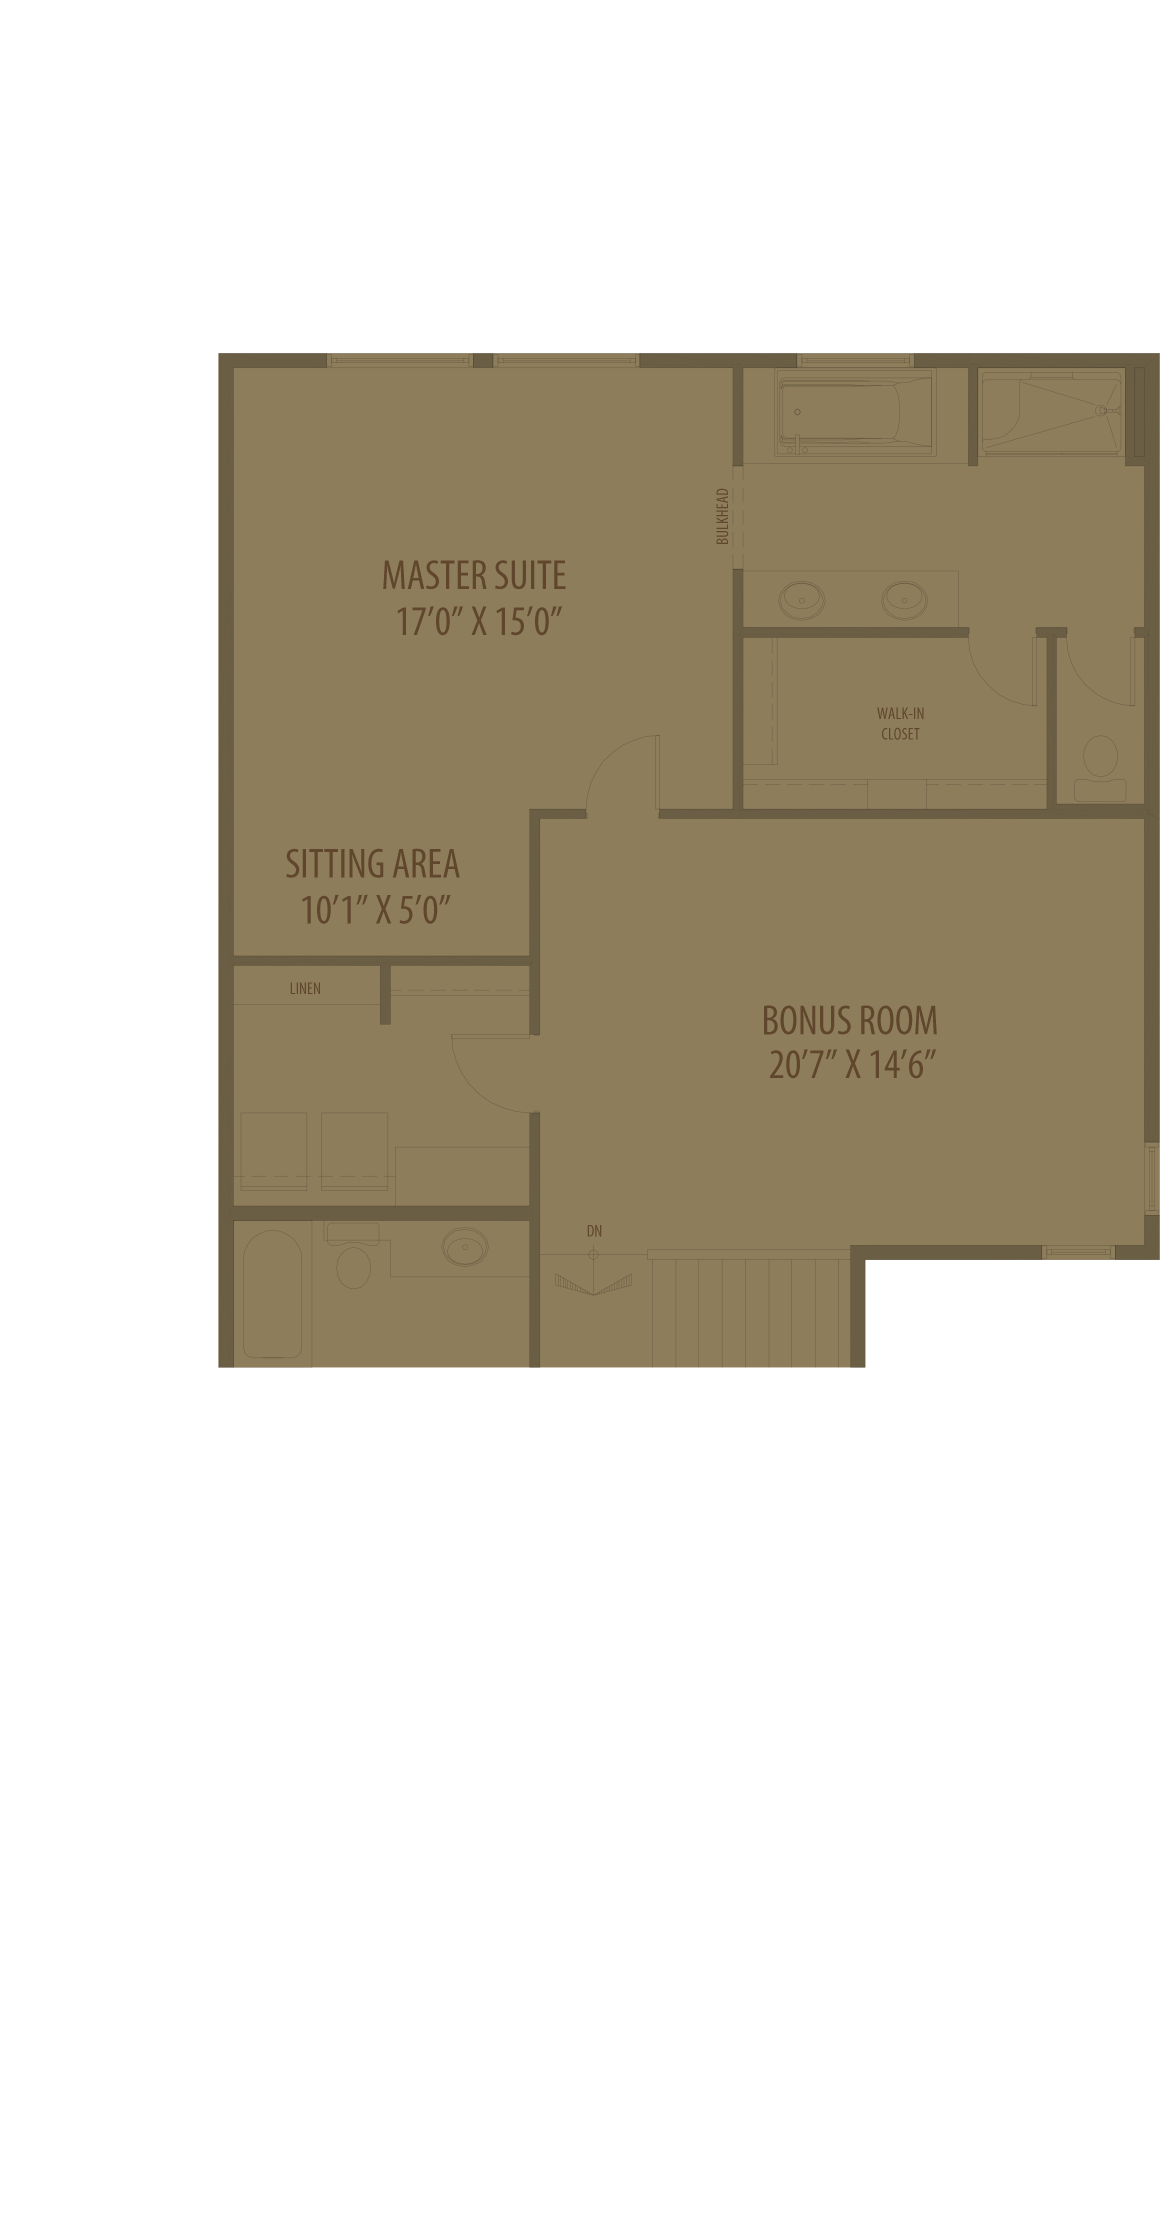 Centre Bonus Room